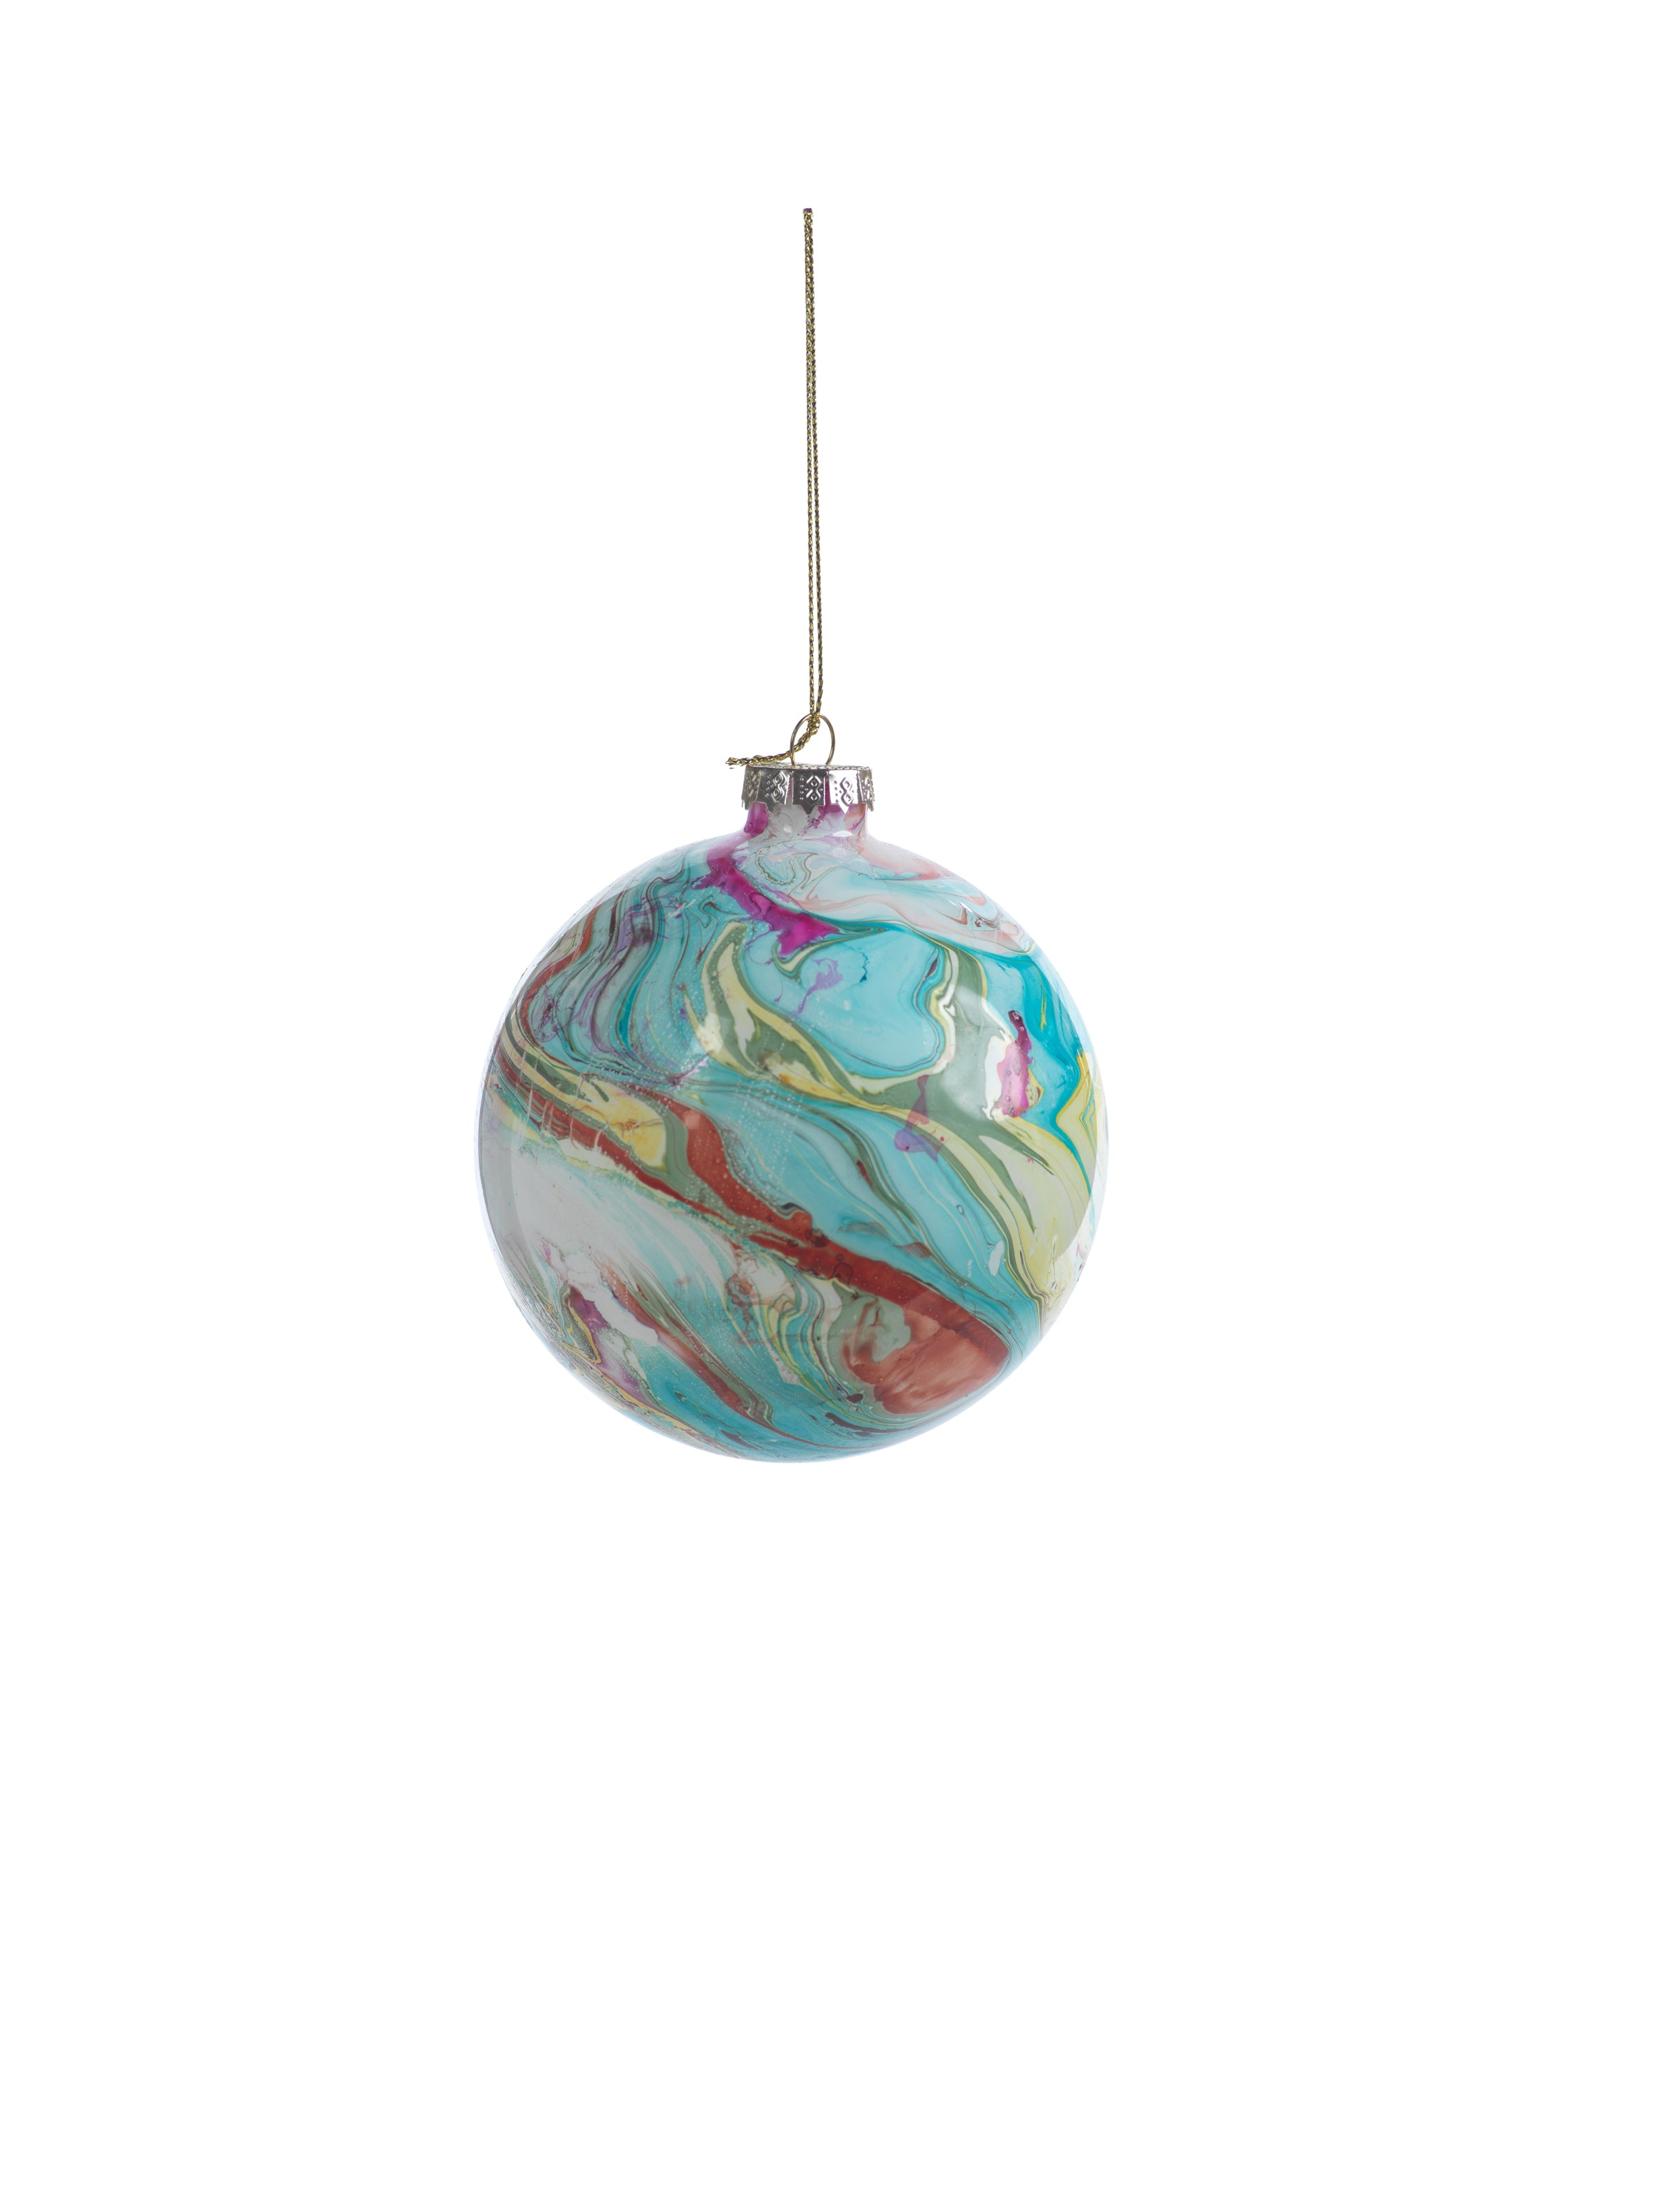 Marble Metallic Ornament - Multi Color